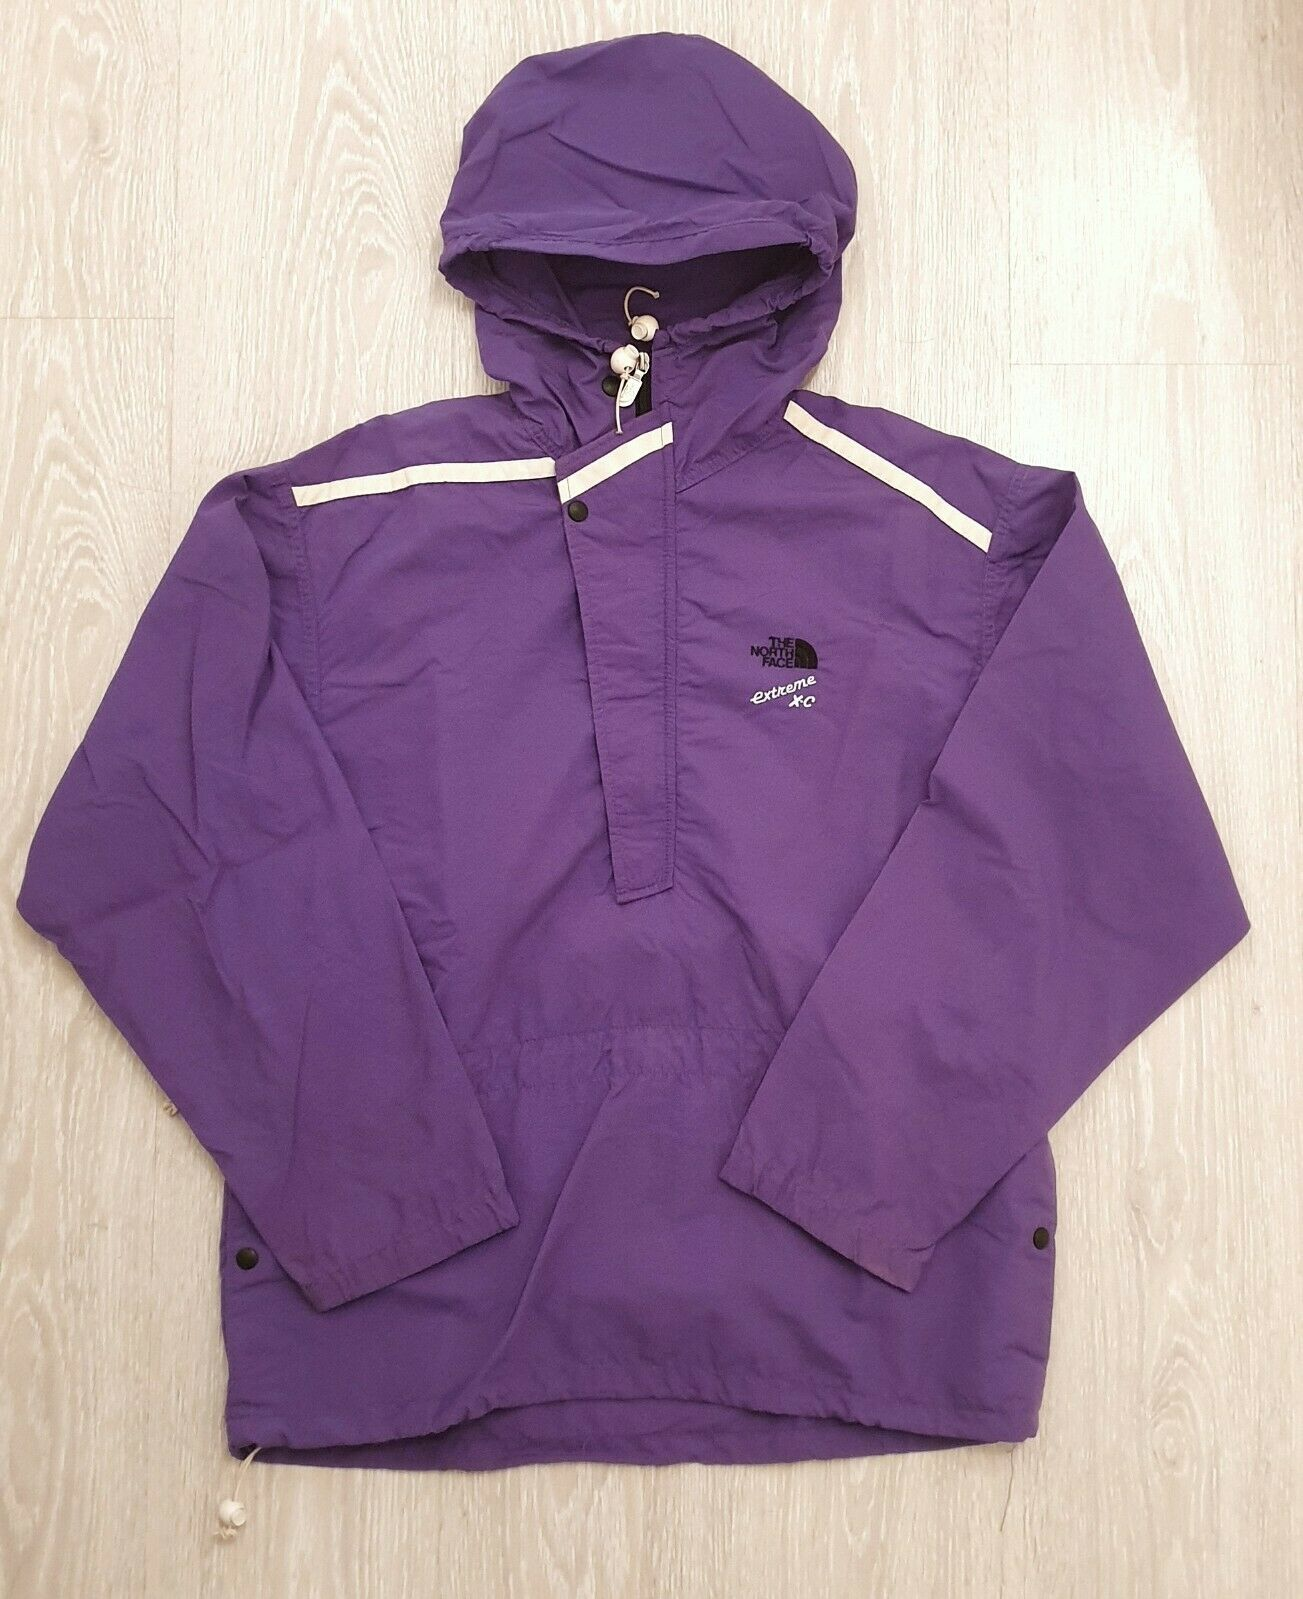 The North Face Vintage Anorak Pullover Jacket Extreme X-C Rare Purple 3M Shell